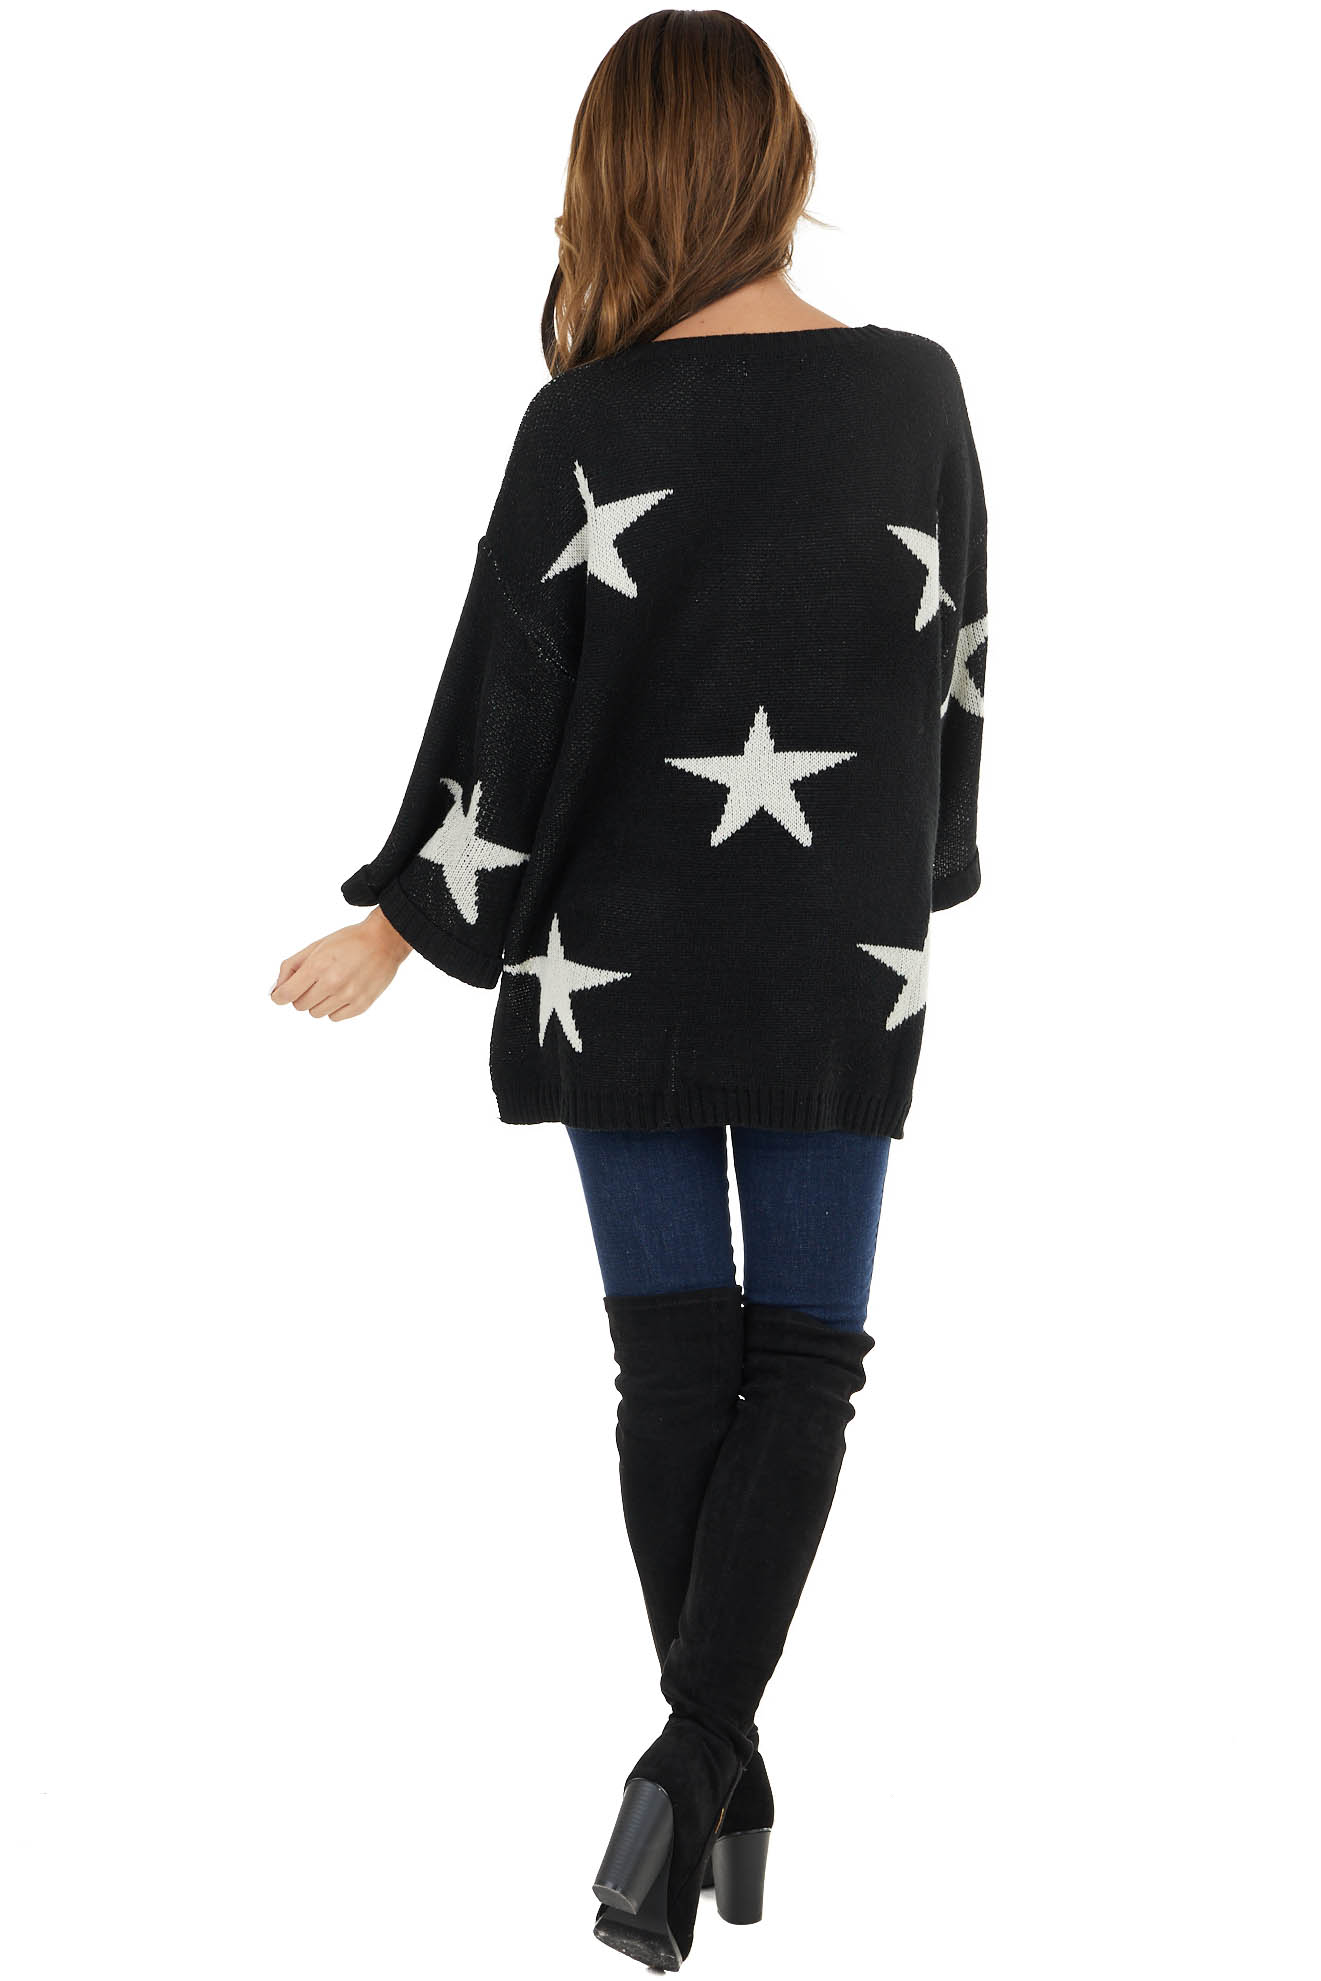 Black Star Print 3/4 Wide Sleeve Sweater with Side Slits